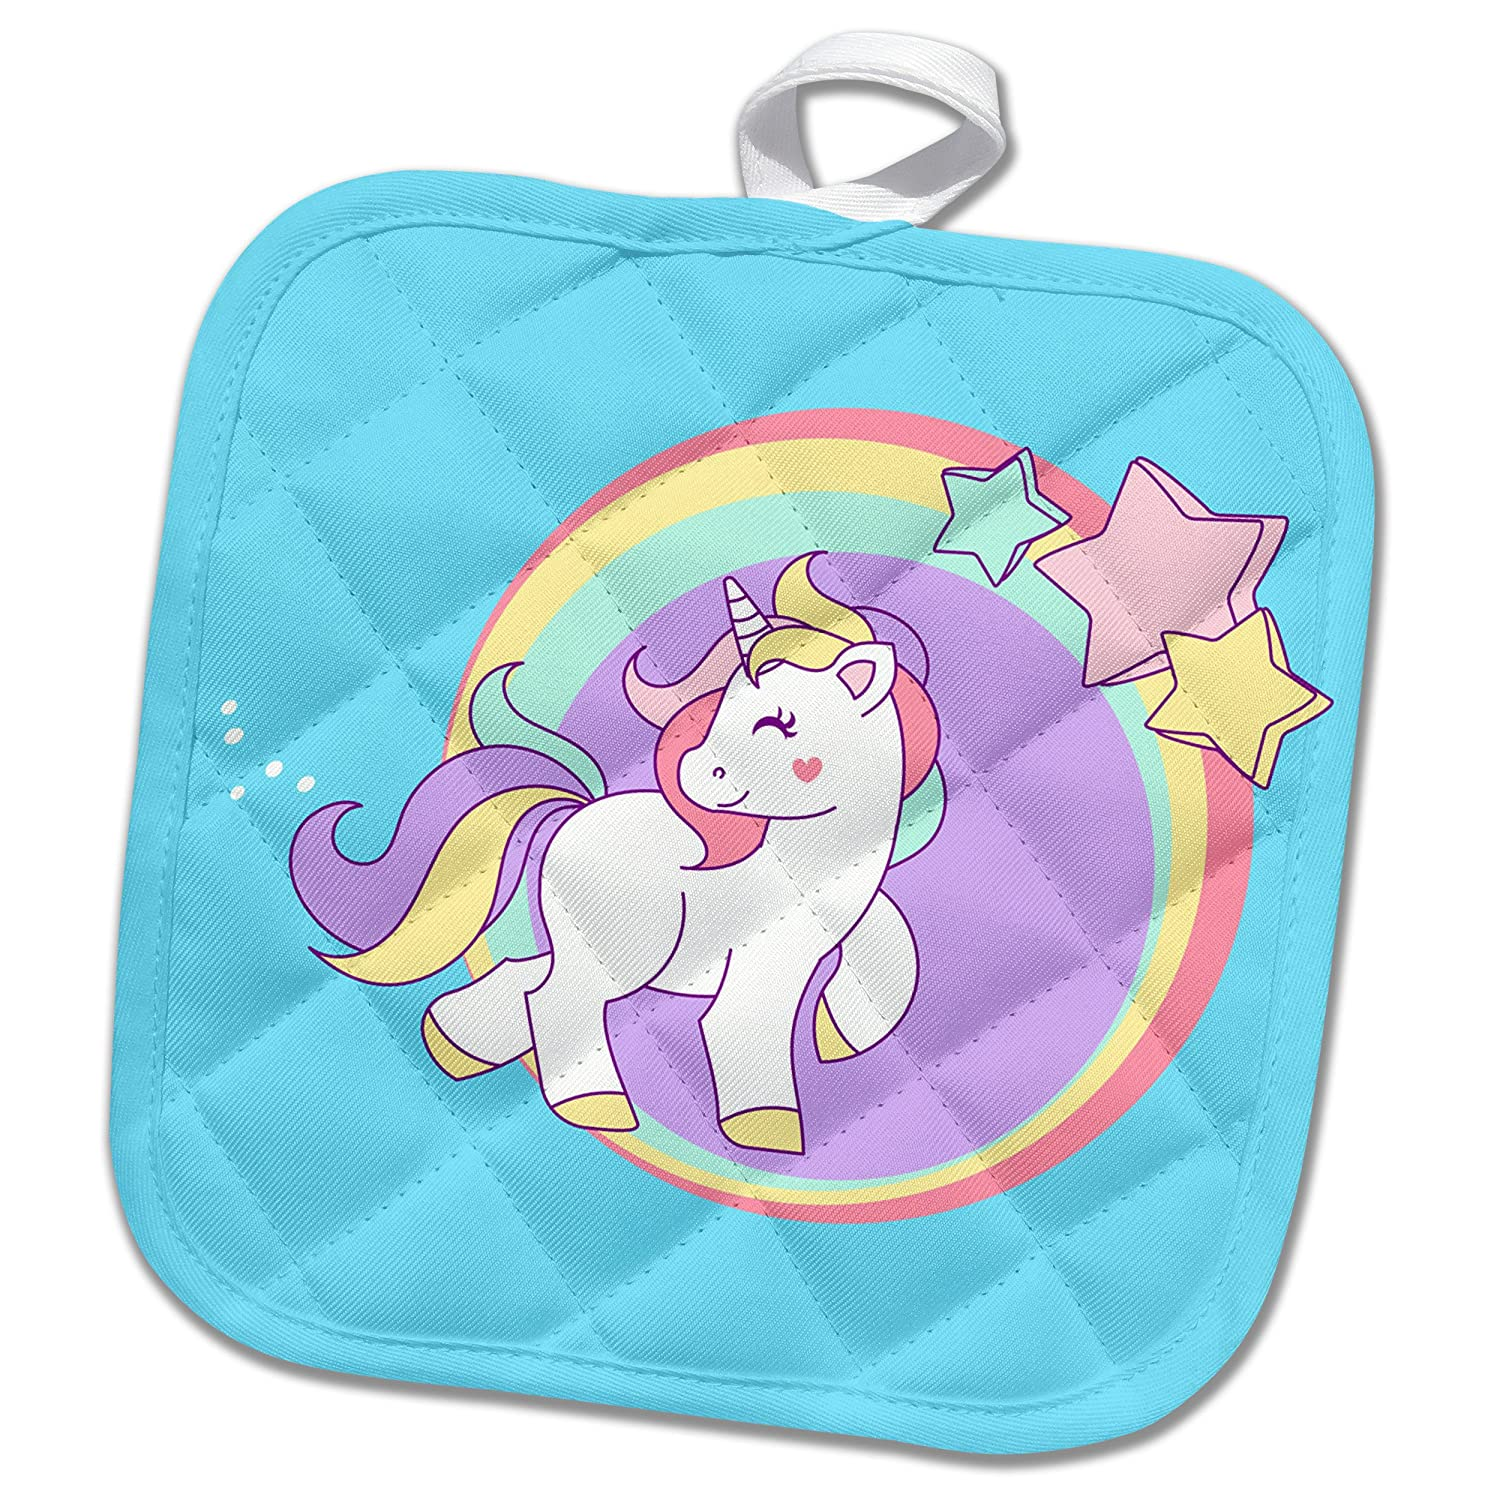 3D Rose Prancing Pastel Unicorn with Circles and Stars Pot Holder 8 x 8